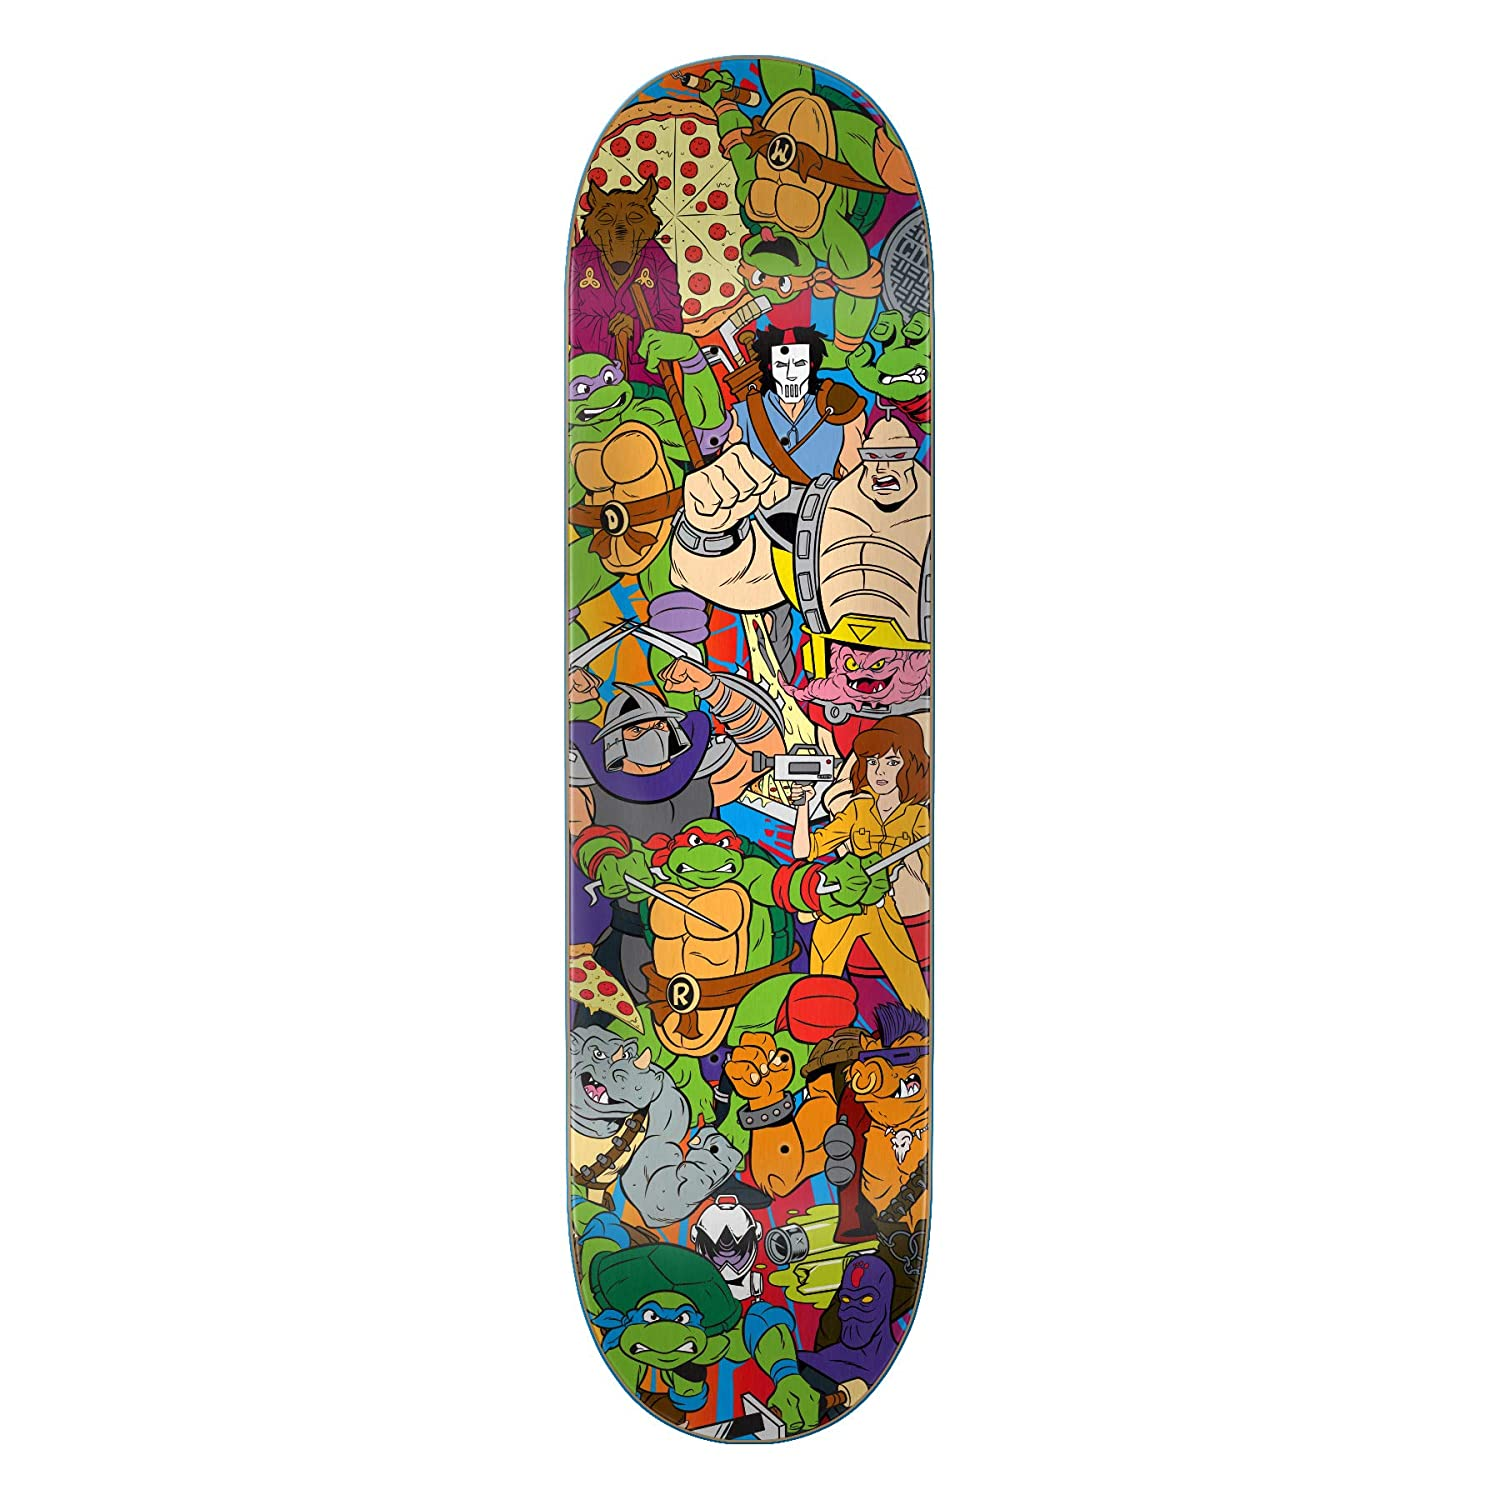 Amazon.com : Santa Cruz Skateboard Decks Teenage Mutant ...